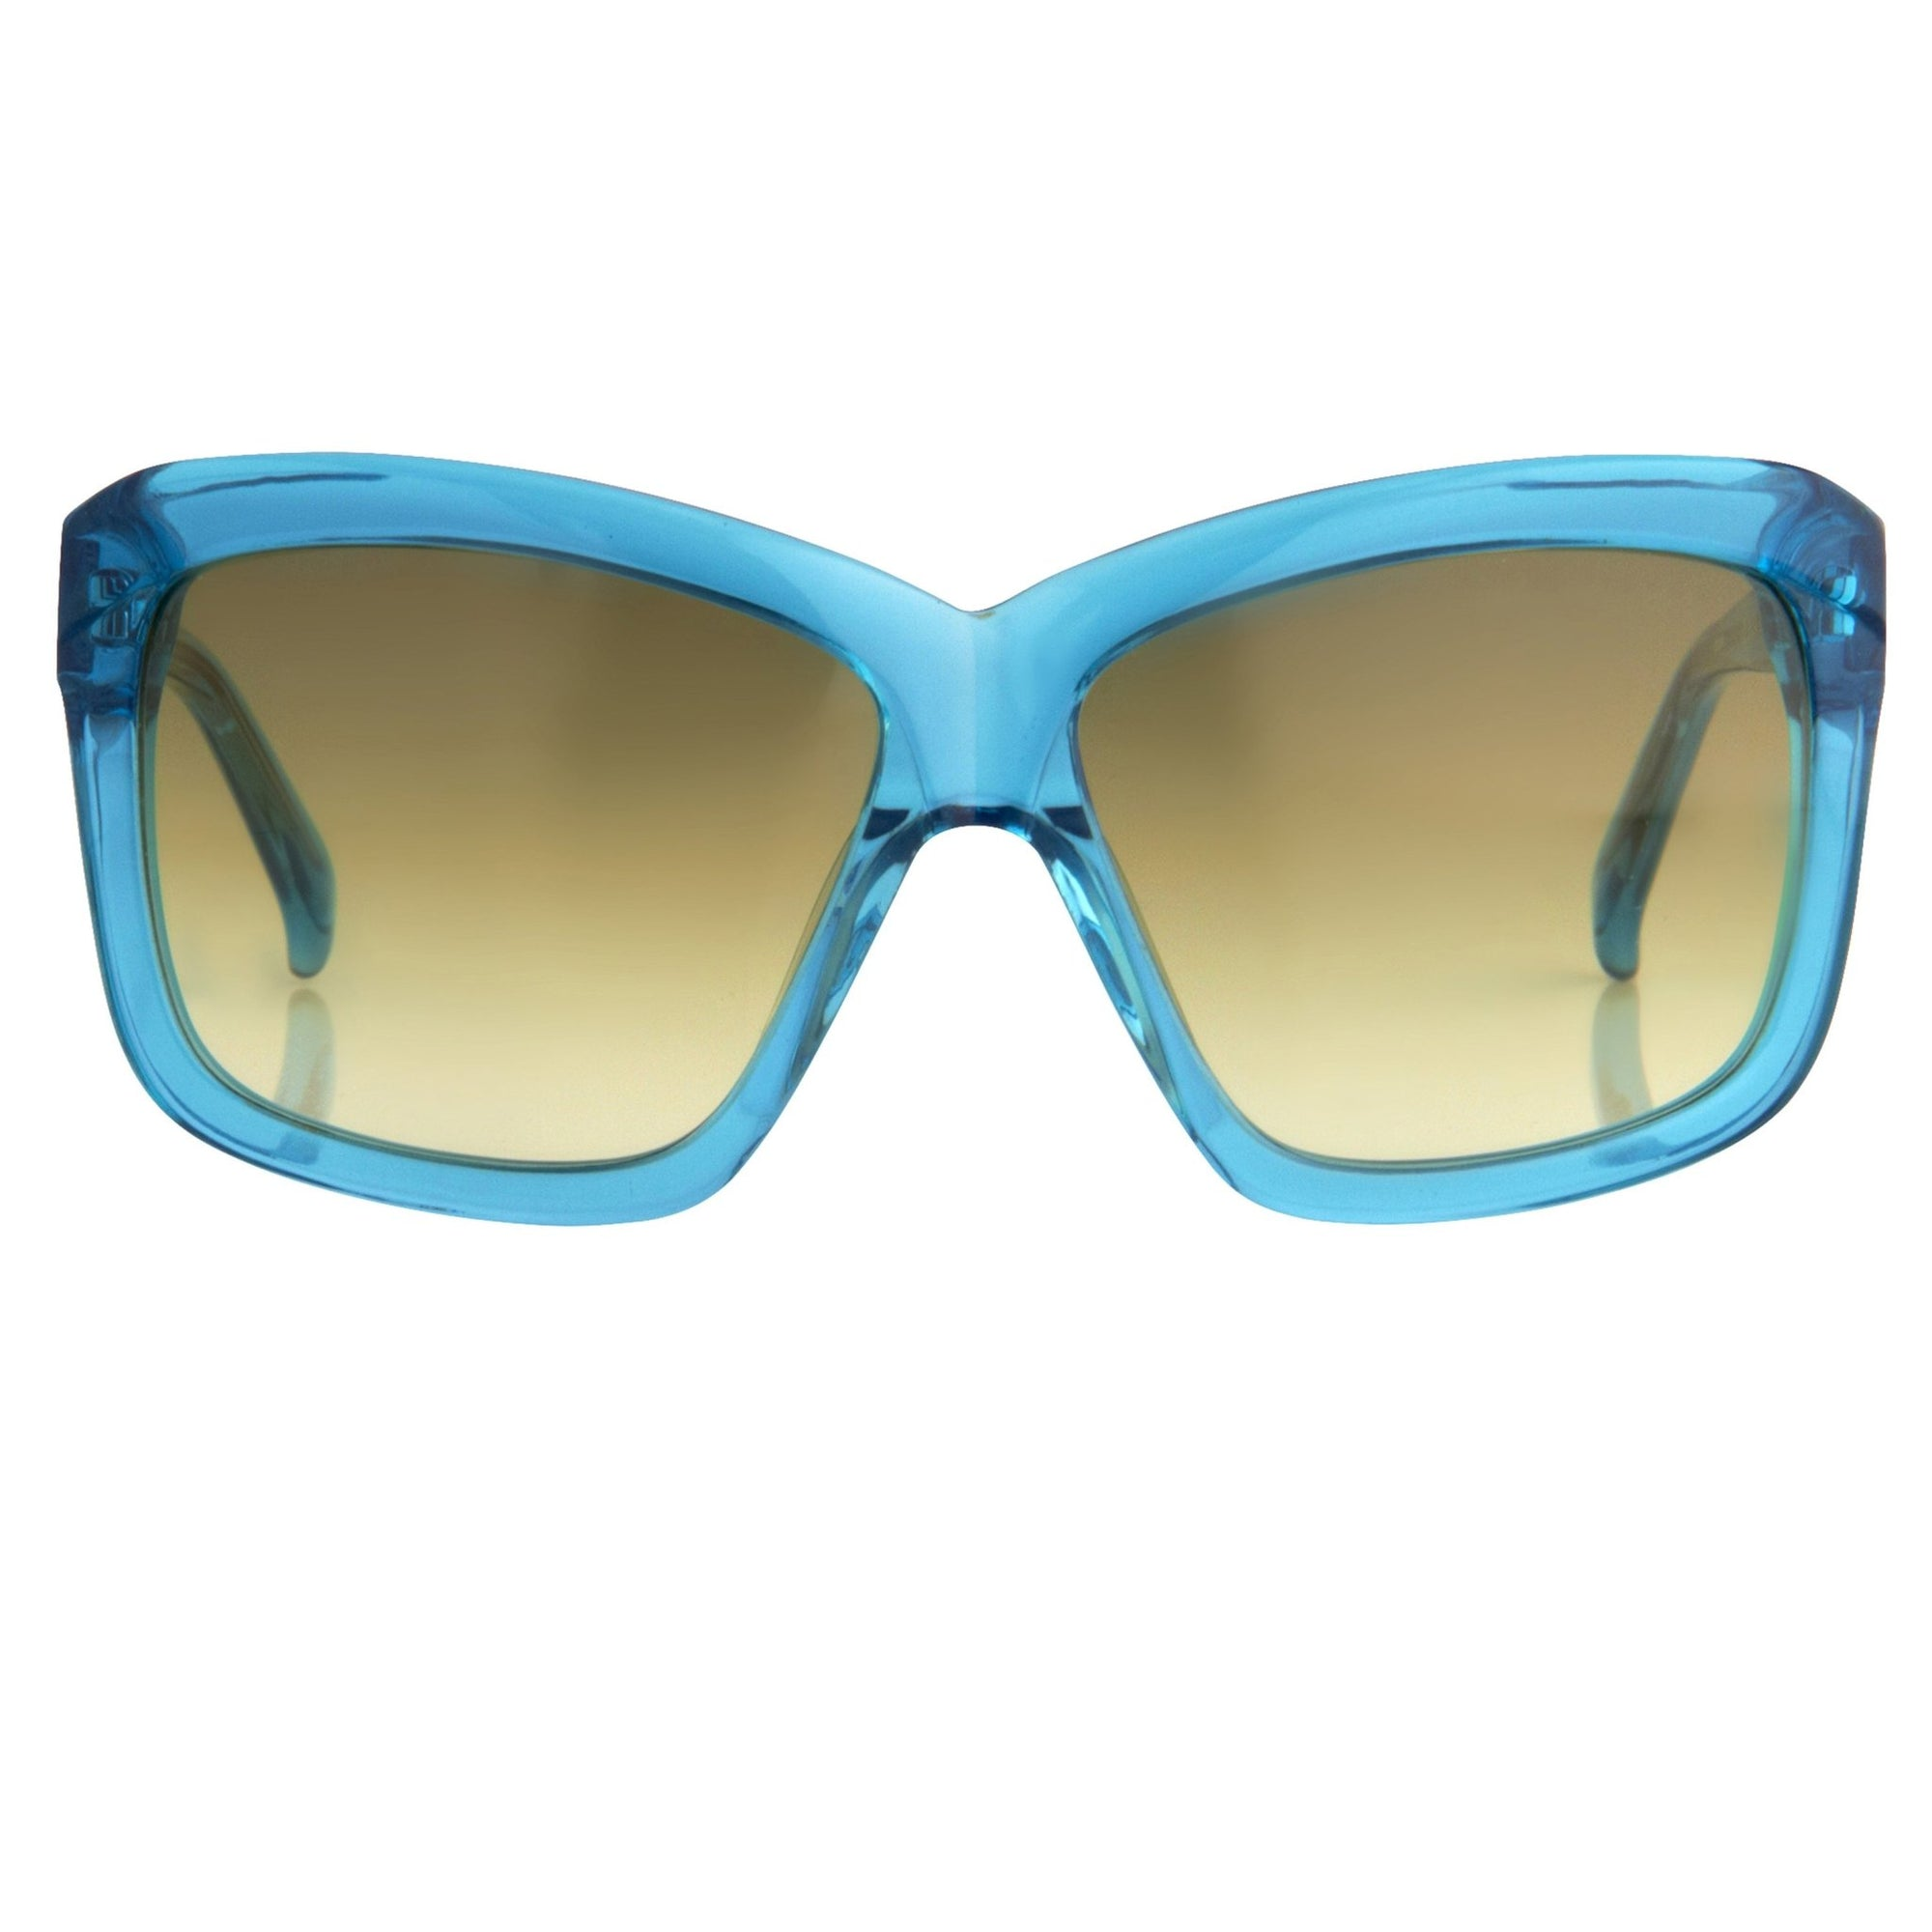 Peter Pilotto Women Sunglasses Rectangular Turquoise With Graduated Brown Lenses PP3C6SUN - Watches & Crystals